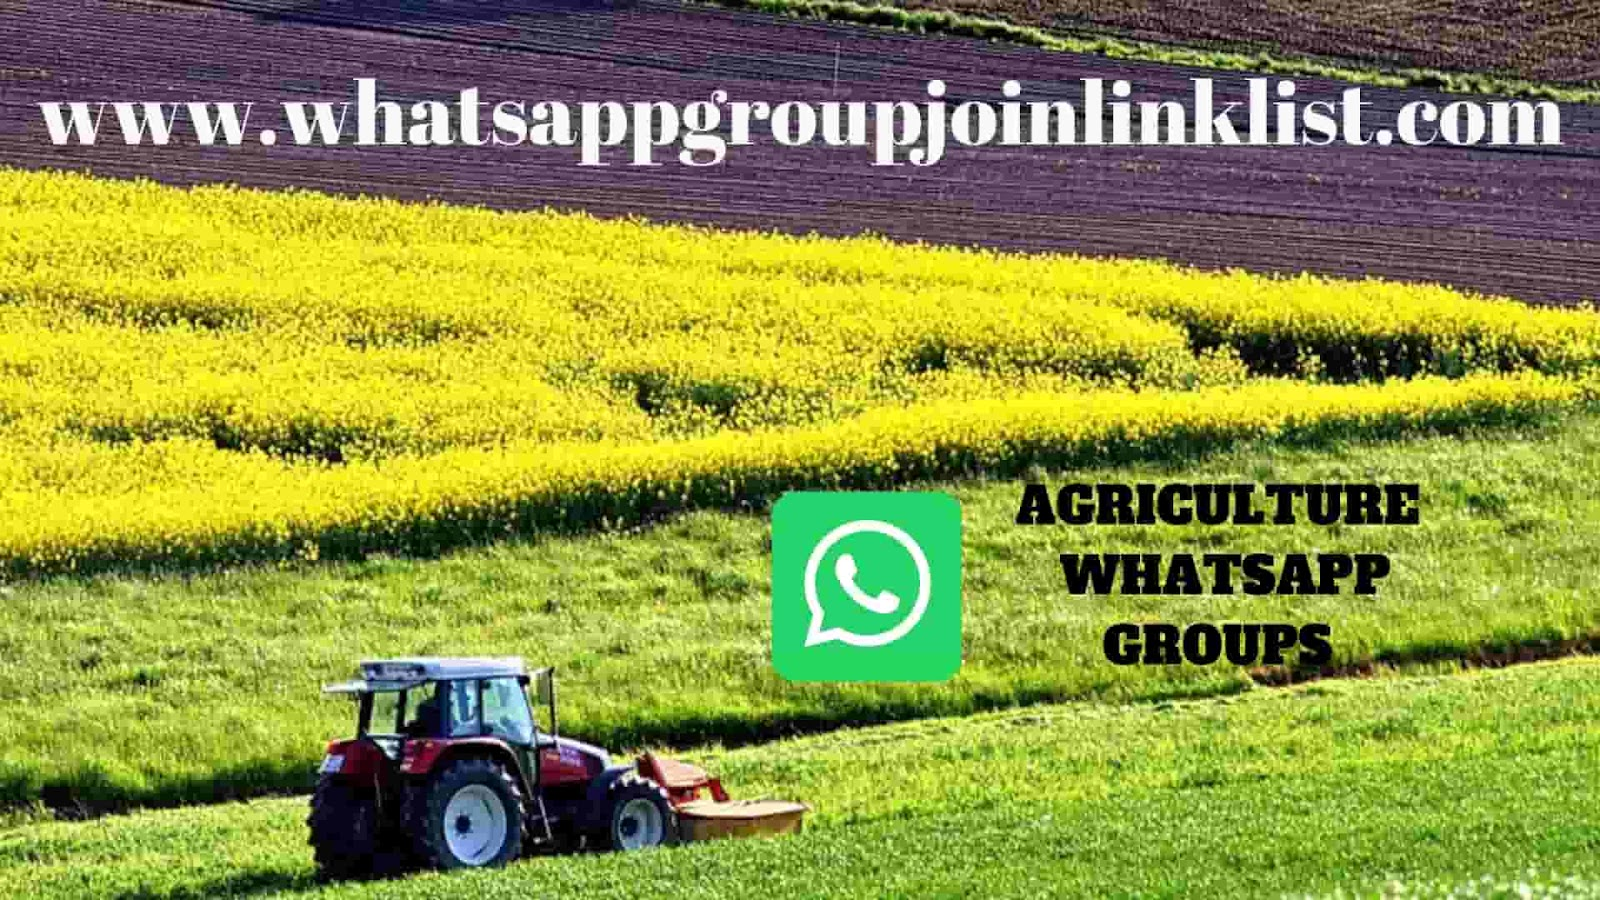 Join Latest Agriculture WhatsApp Group Join Link List